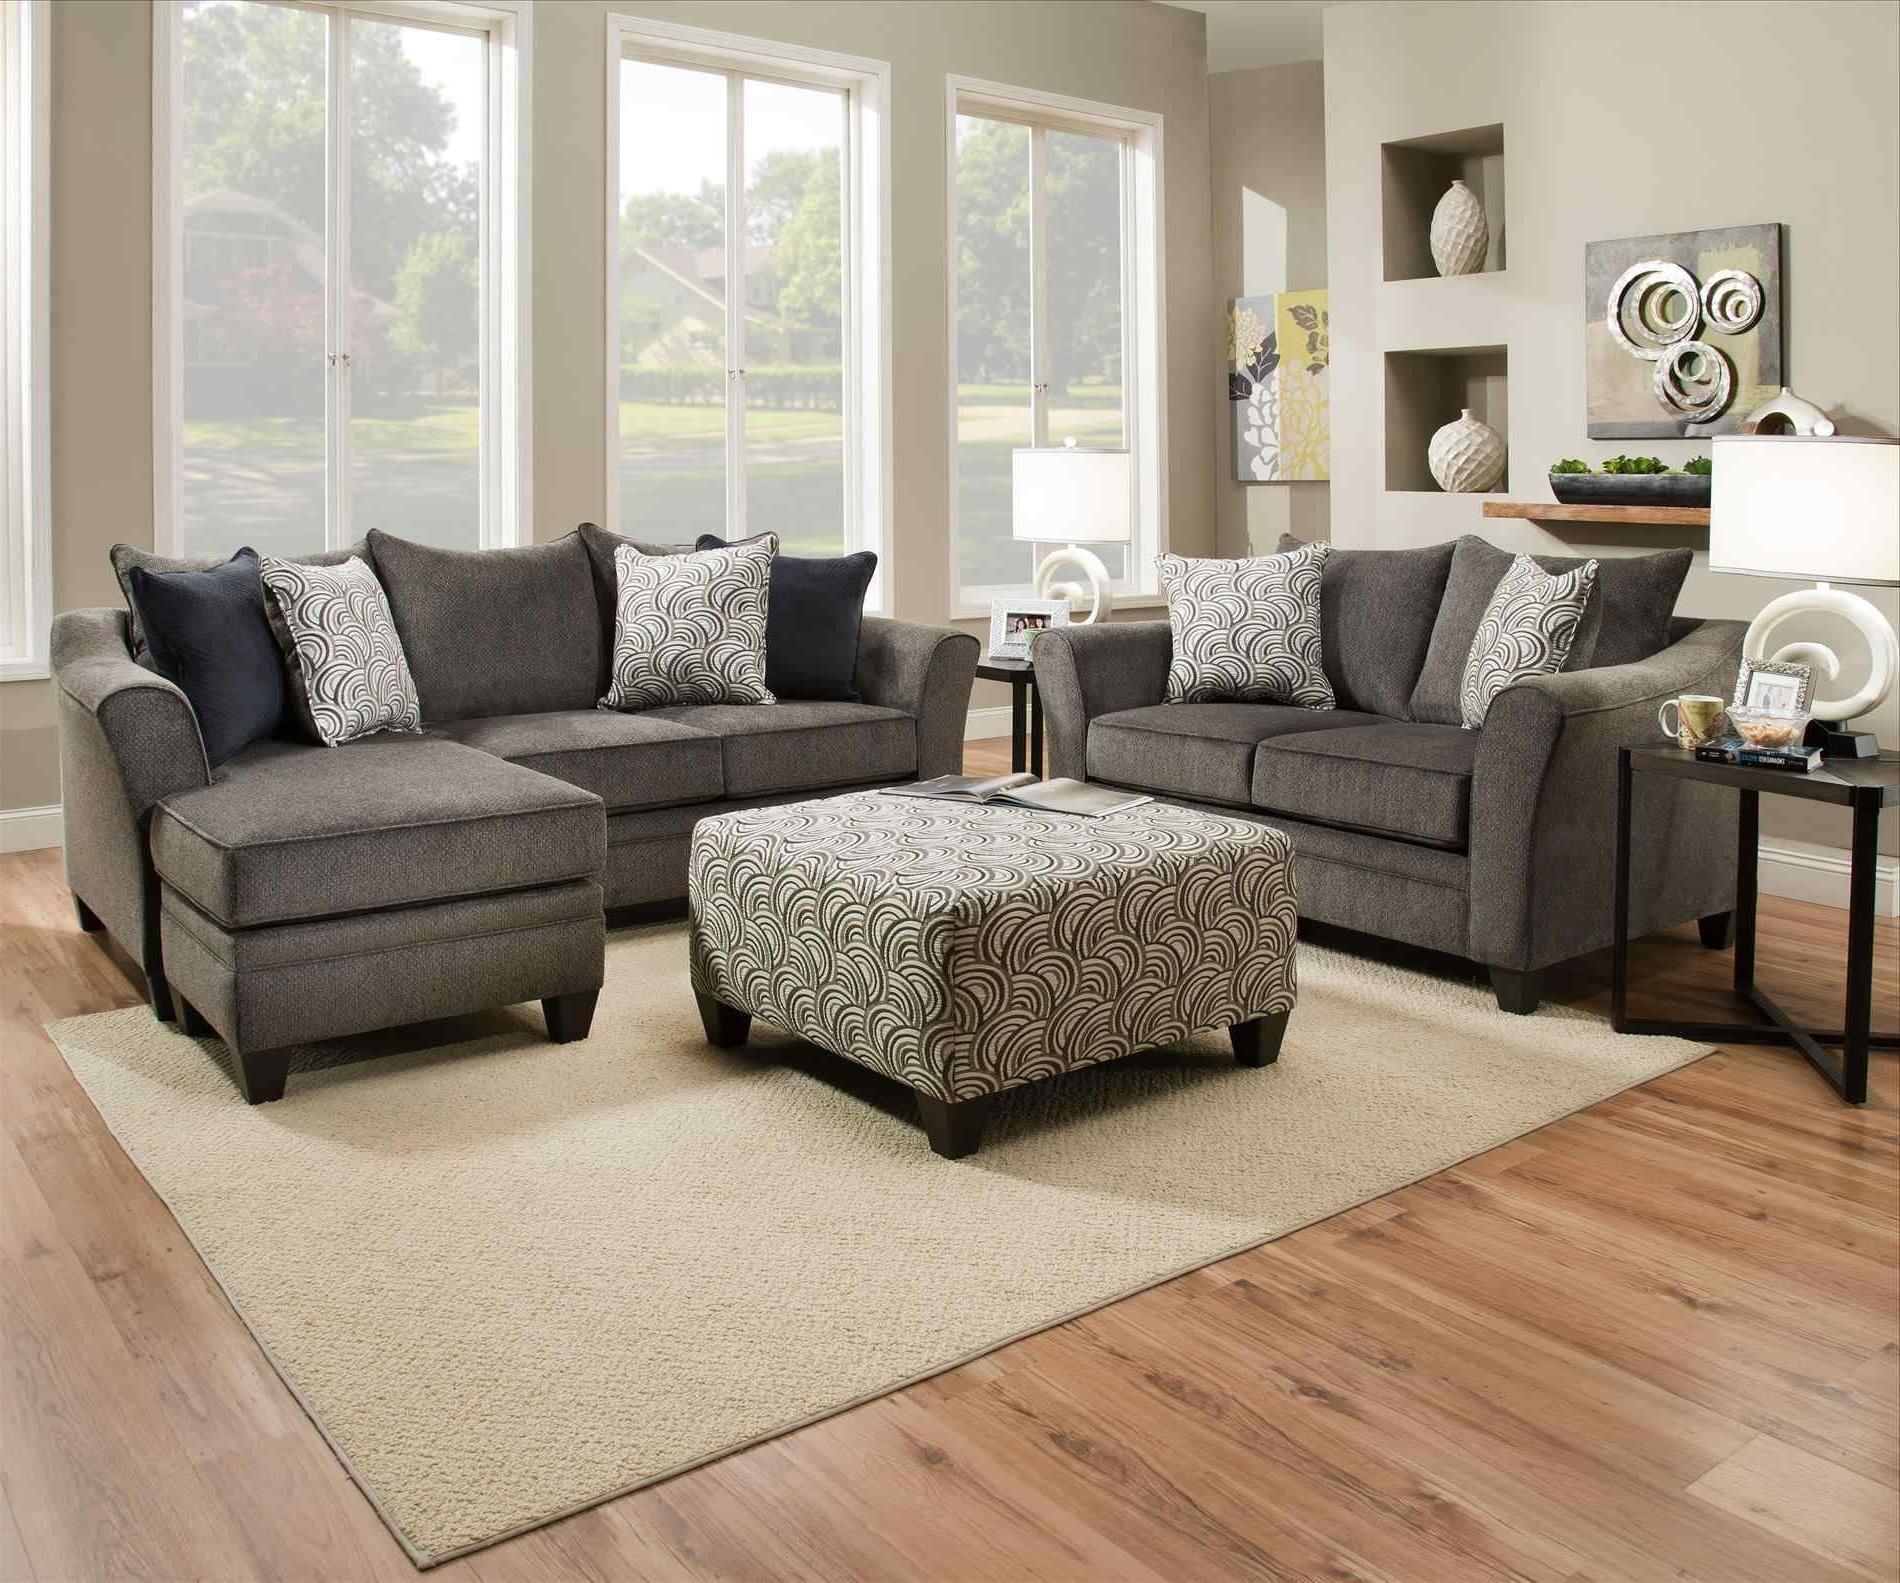 Overstock Sectional Sofas Regarding Most Current Sofas : Deep Sofa Sectional Sofas Online Apartment Sofa Overstock (View 14 of 15)